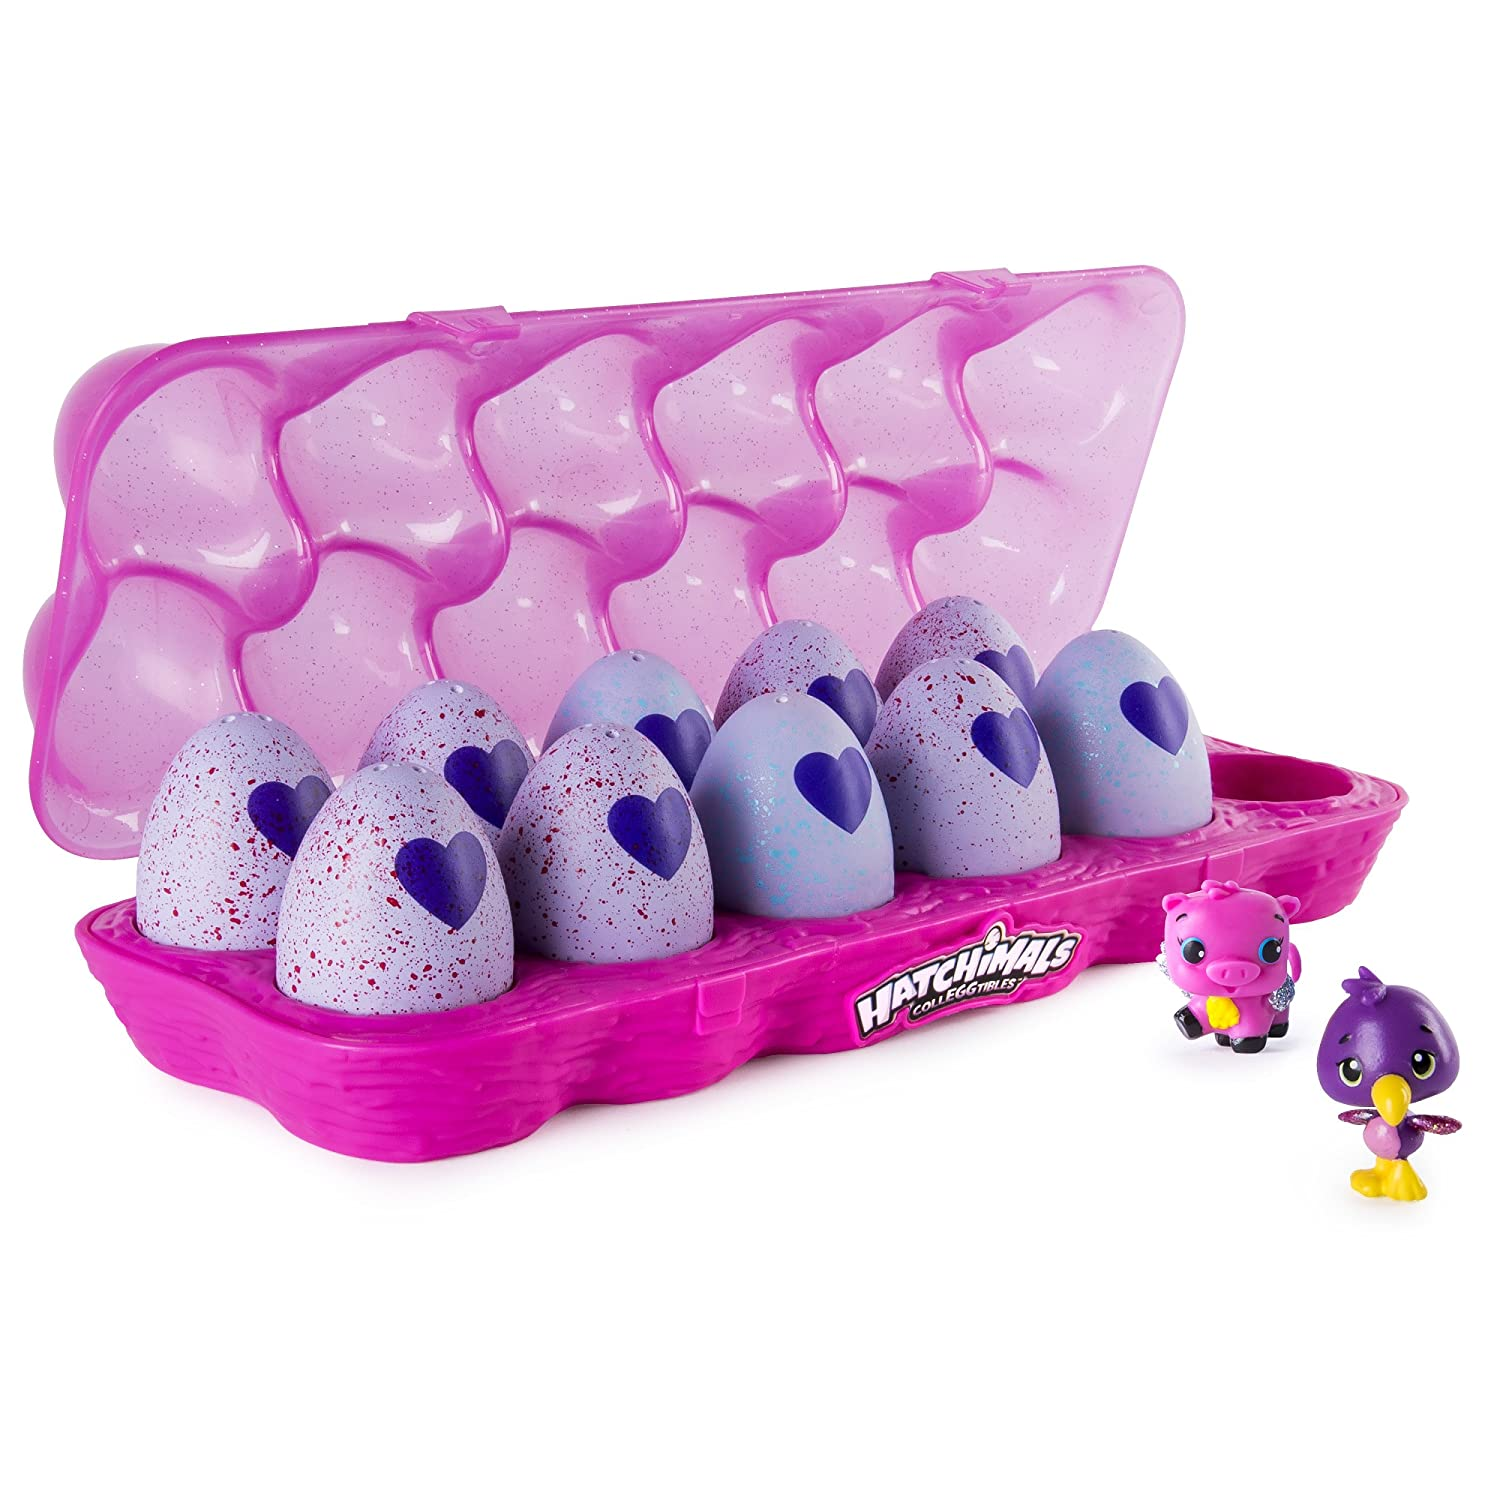 You can buy the Hatchimals